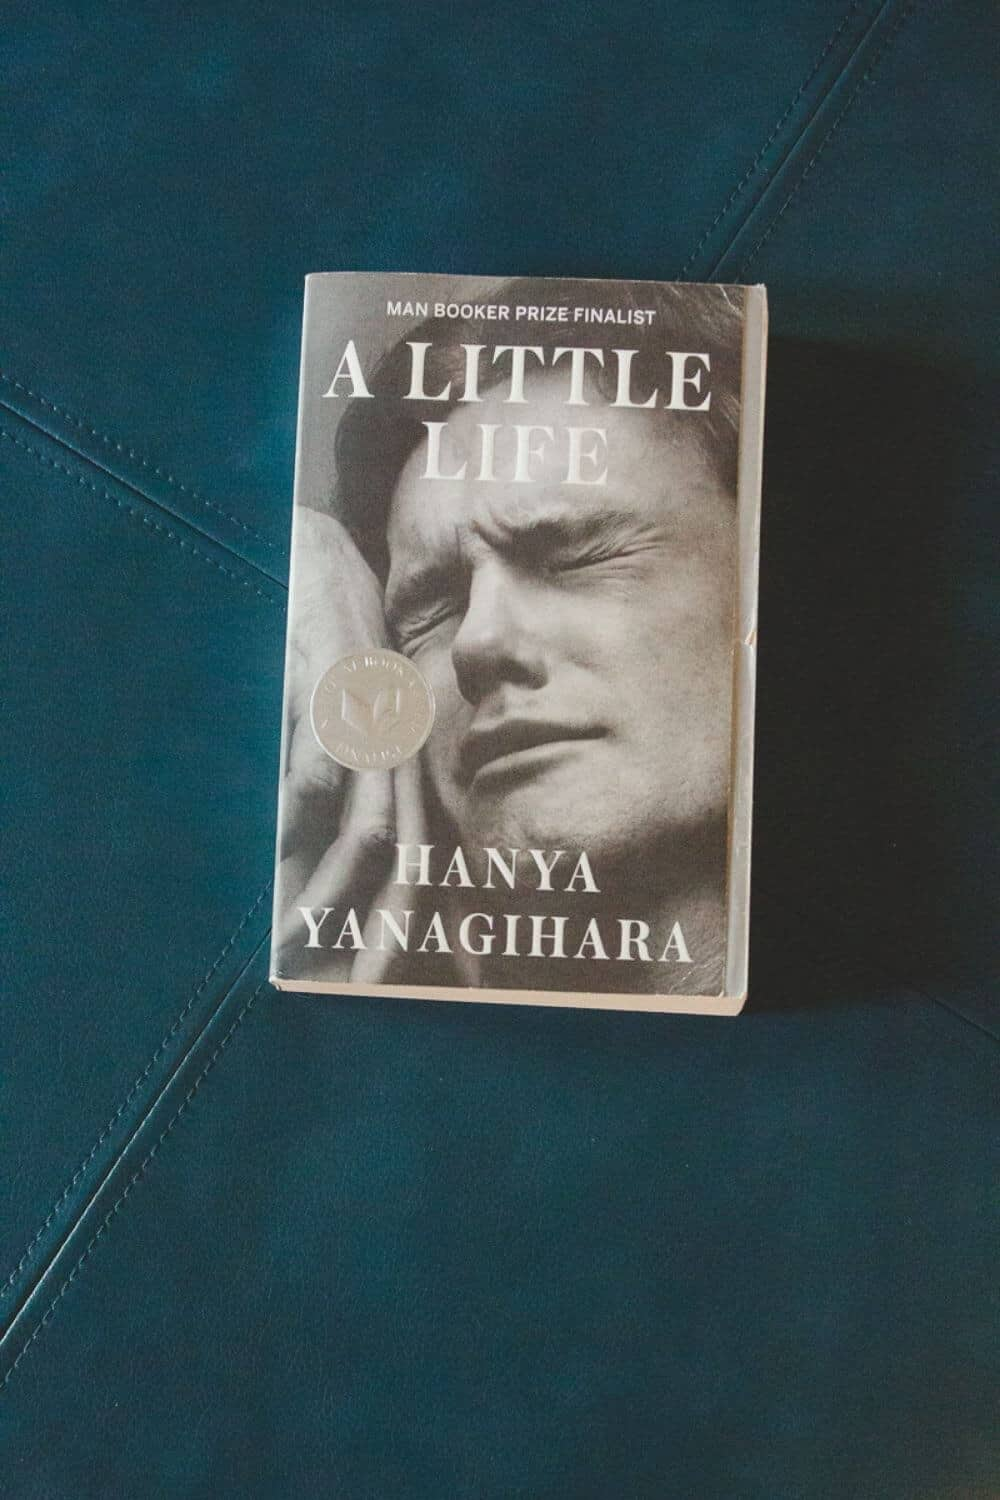 A Little Life, an all-time favorite book